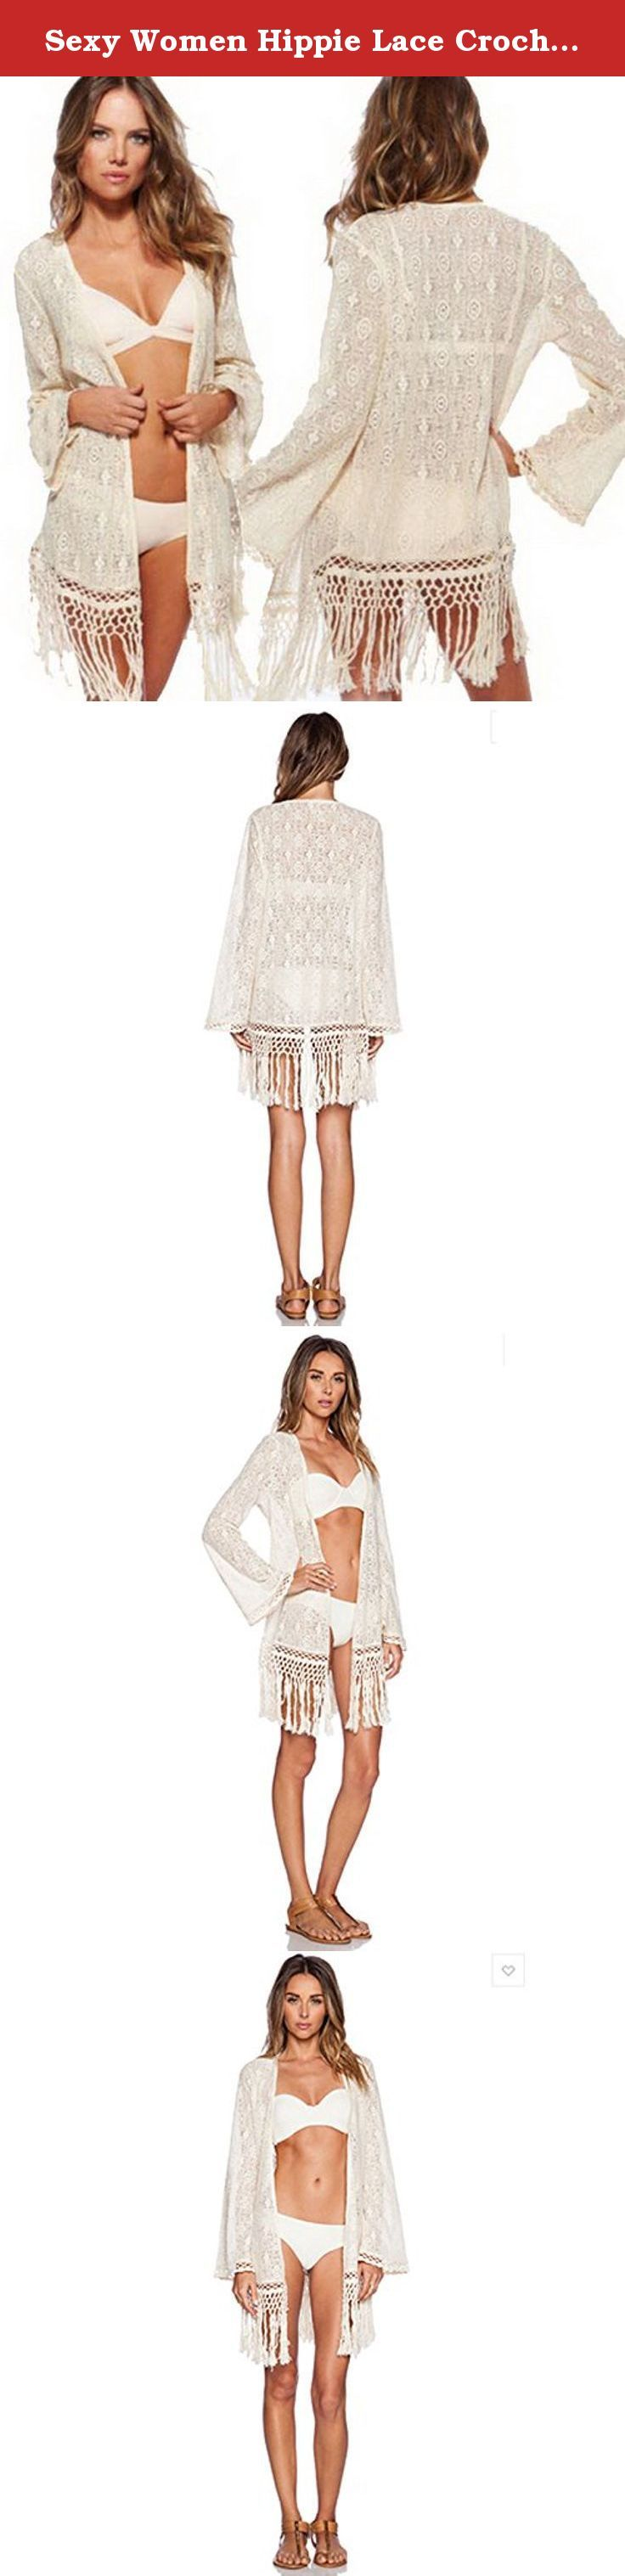 Sexy Women Hippie Lace Crochet Bikini Cover up Swimwear Beach Dress Tops Kaftan (One Size, white). Sexy Women Hippie Lace Crochet Bikini Cover up Swimwear Beach Dress Tops Kaftan Bust --90cm, length--59cm (excluding tassels), 81cm (with tassel) , sleeve --47cm 100% brand new and good quality, It is rather comfortable and sexy, Beautiful and high quality suit, padded cups Perfect to wear at the beach Brand: new without tags Fabric: 88% Polyamide + 12% Spandex, stretchy and comfortable…